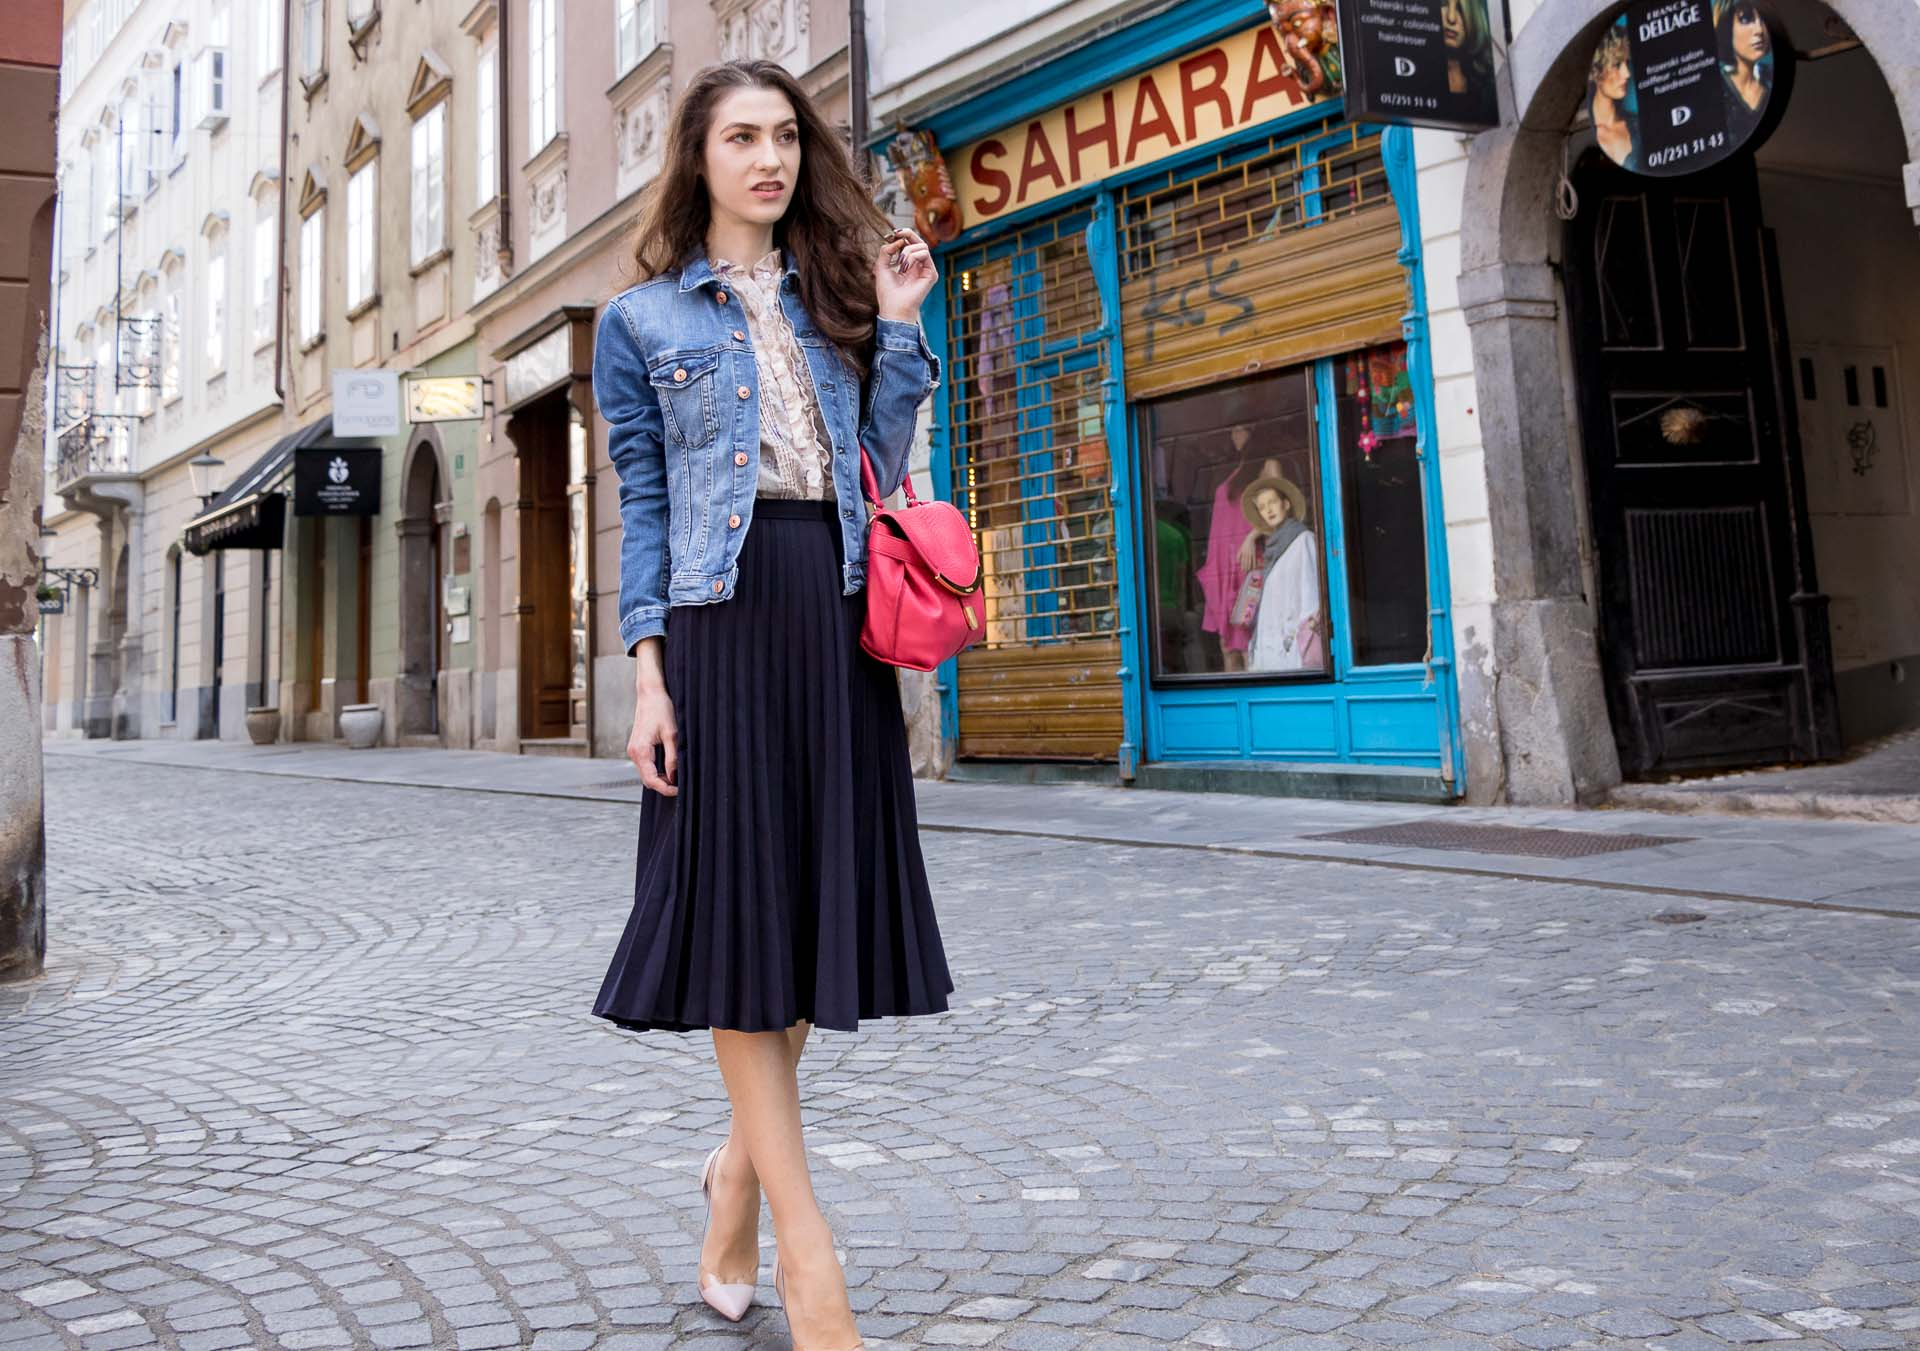 Veronika Lipar Fashion Blogger of Brunette from Wall Street dressed in H&M denim jacket, floral blouse, midi pleated skirt, Gianvito Rossi plexi pumps, pink top handle bag while walking on the street in Ljubljana